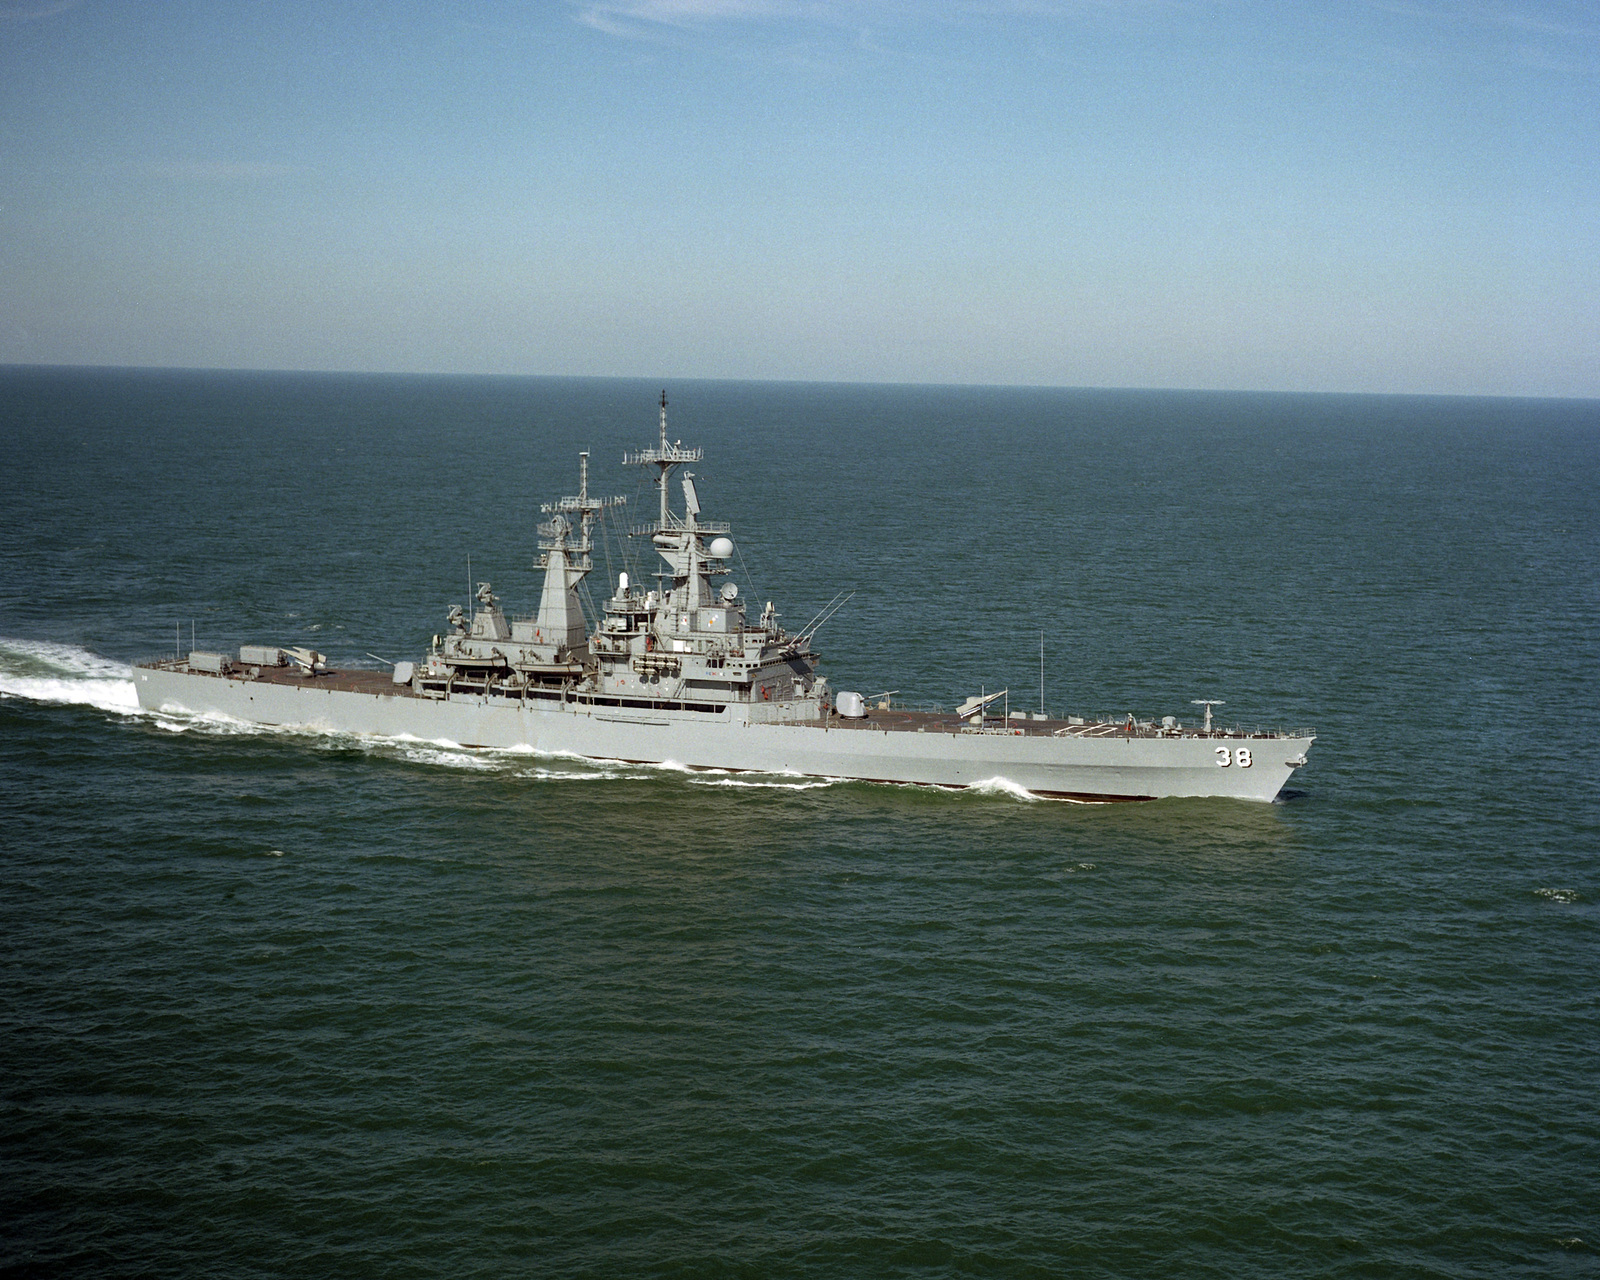 A starboard view of the nuclear-powered guided missile cruiser USS VIRGINIA (CGN 38) underway off the coast of Cape Henry, Virginia (VA)